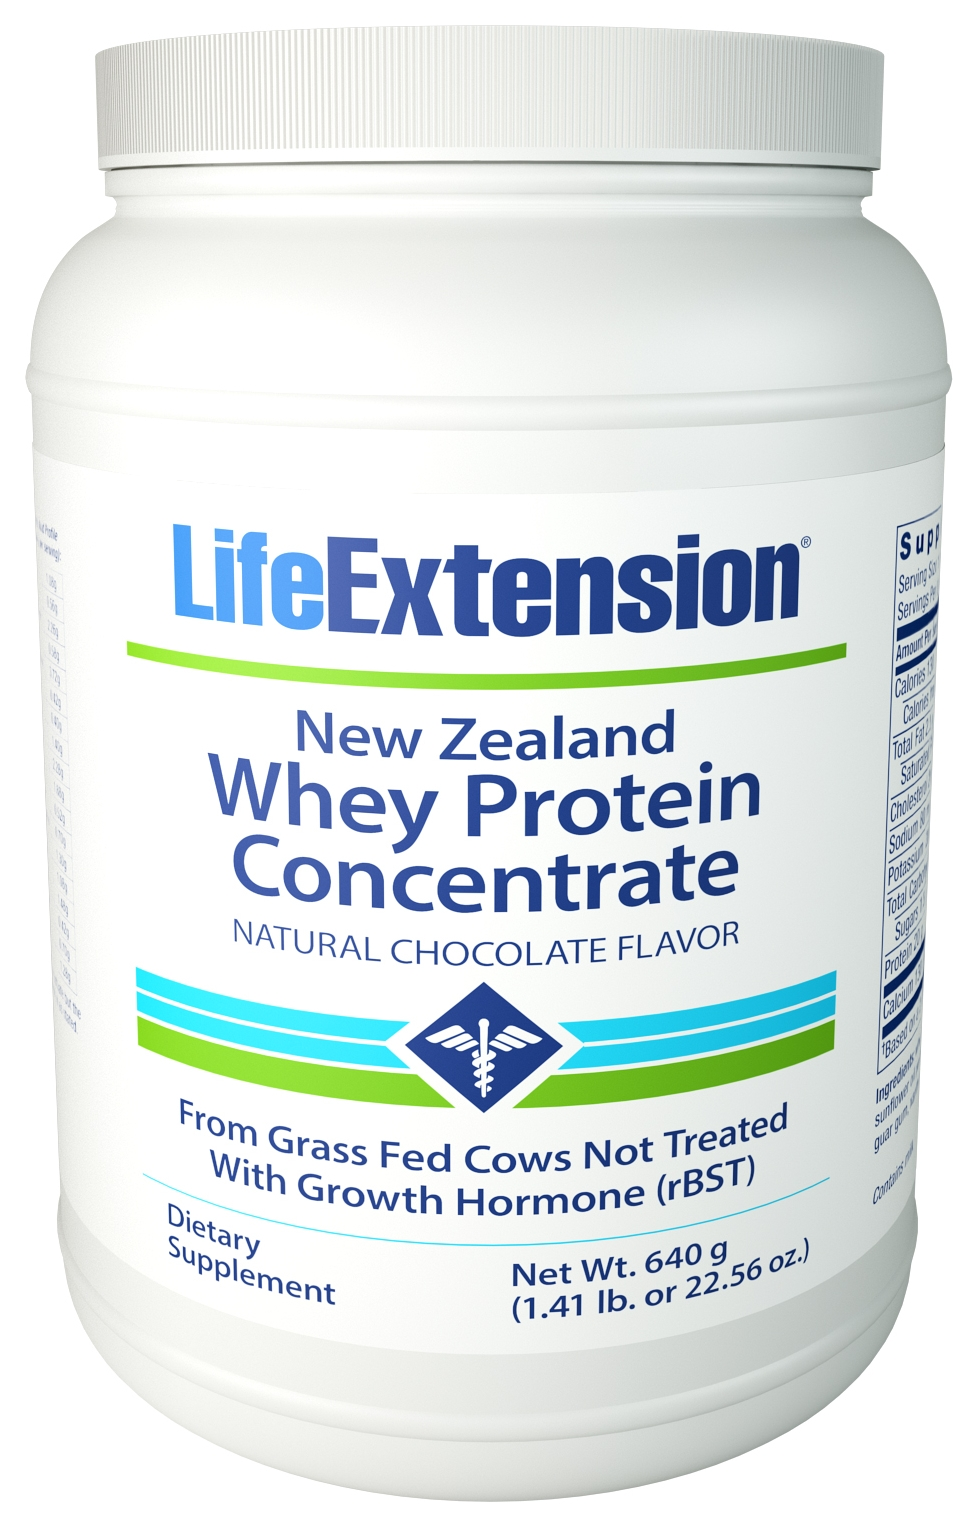 New Zealand Whey Protein Concentrate Natural Chocolate 660 g (1.45 lb) Life Extension